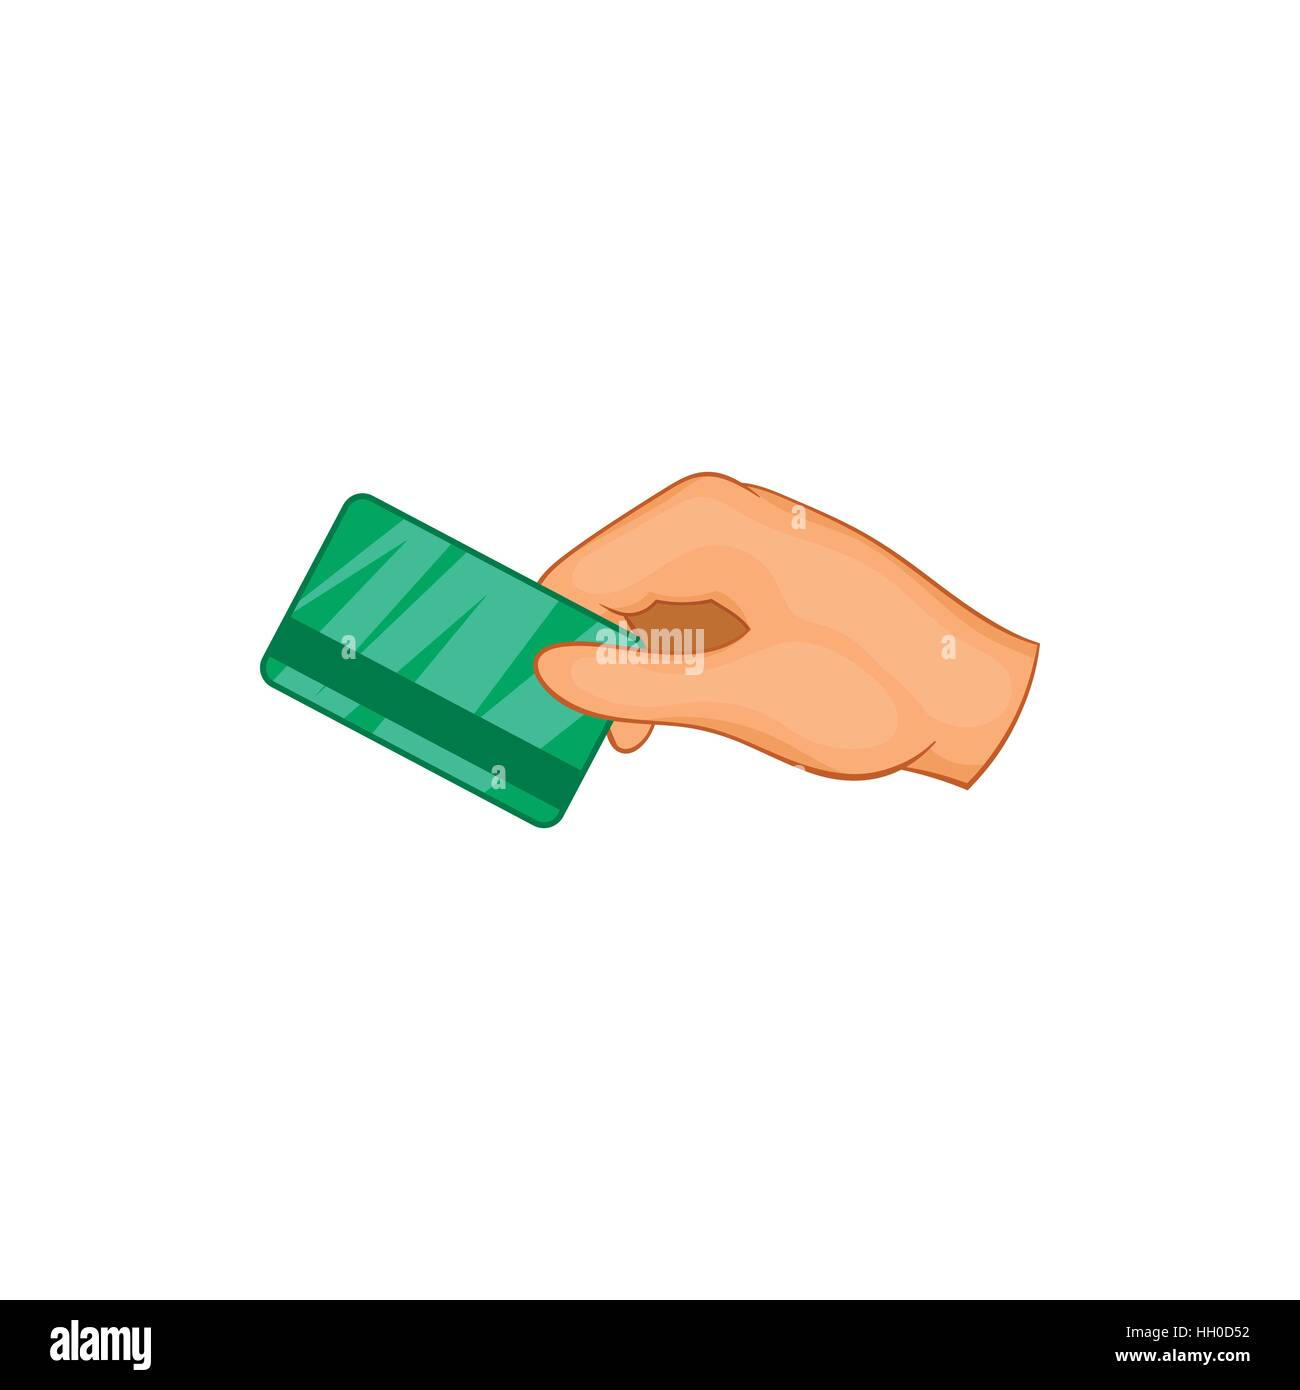 Hand with hotel room key card icon stock vector art illustration hand with hotel room key card icon ccuart Images